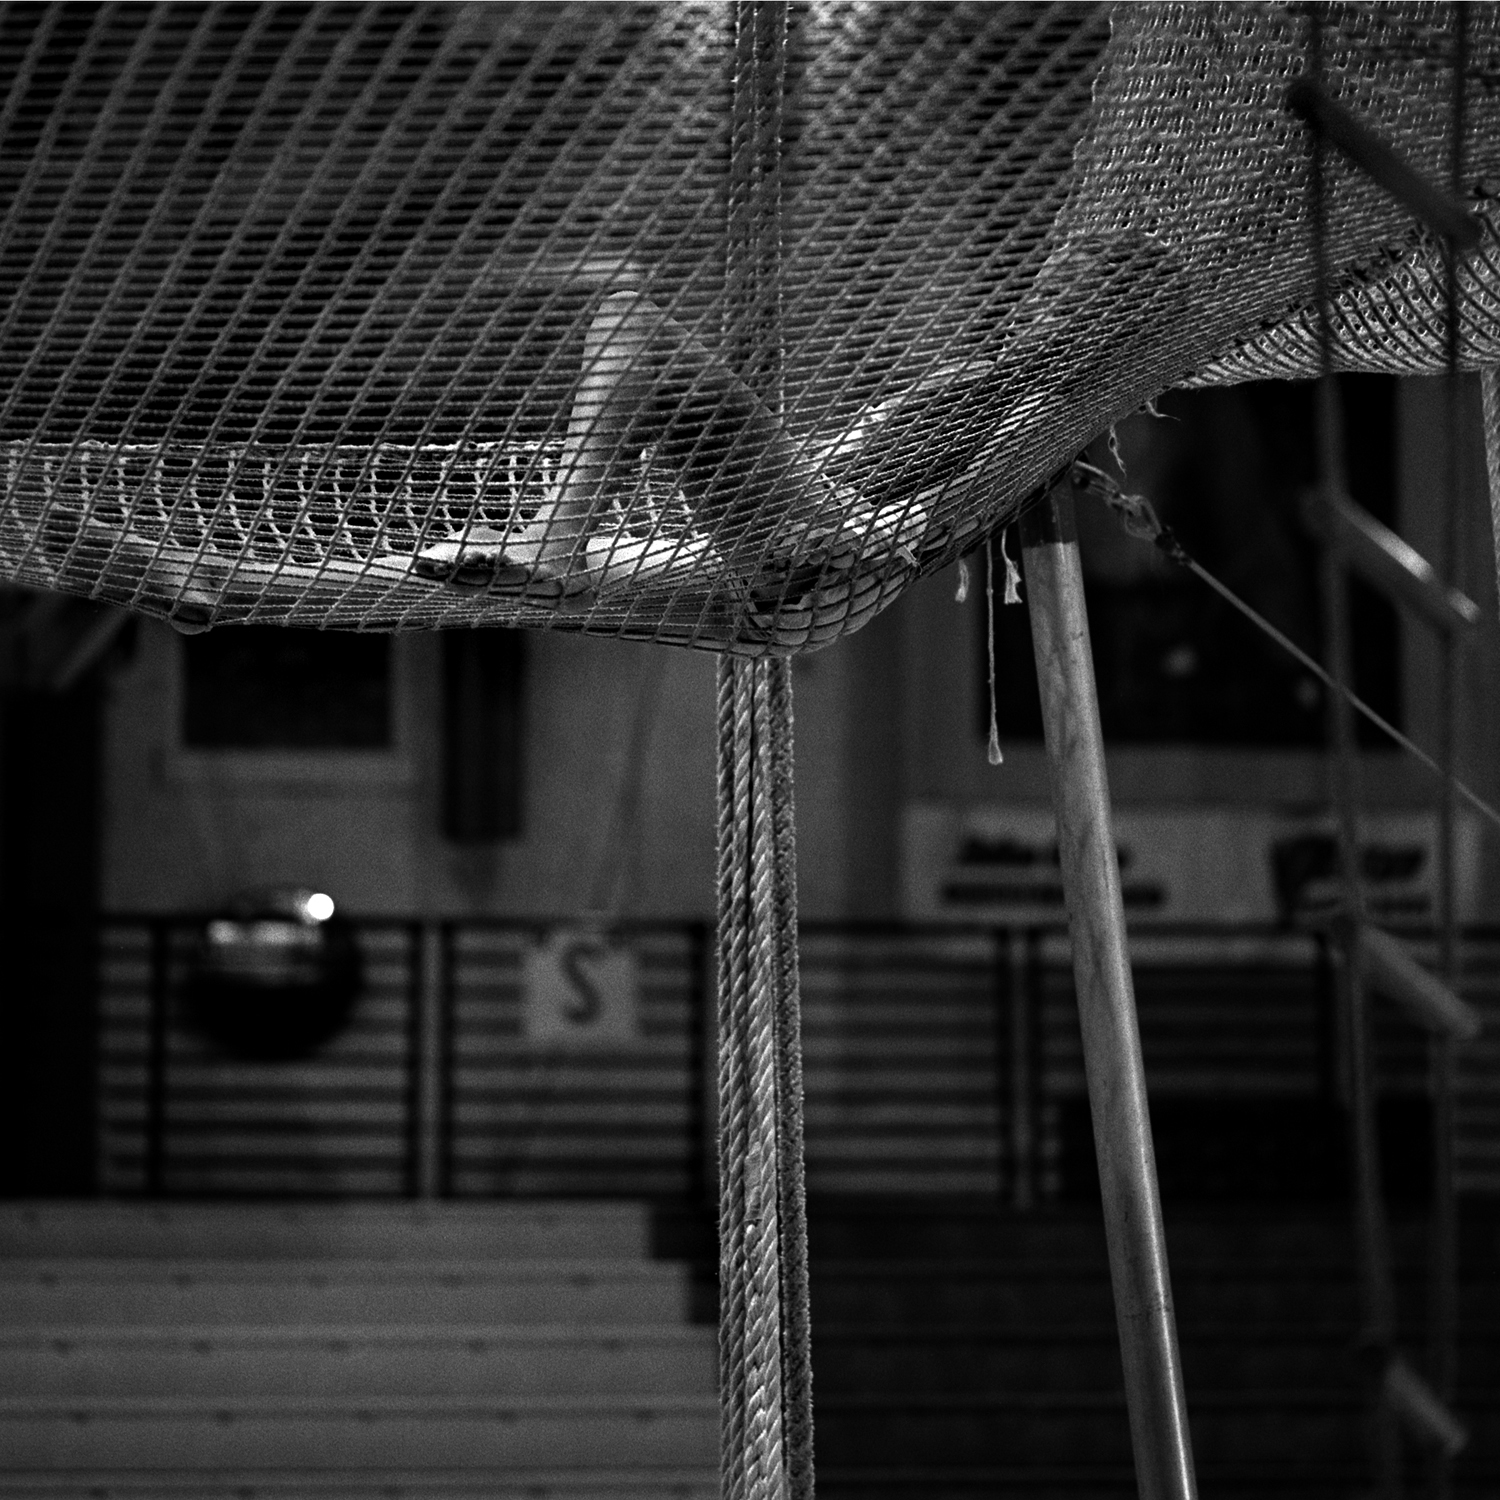 Josie Murphy, 13, rests between practice sessions. Josie is a third generation flying trapeze performer, one of a number of families whose participation spans generations. The following year she could no longer perform because basketball presented a scheduling conflict.